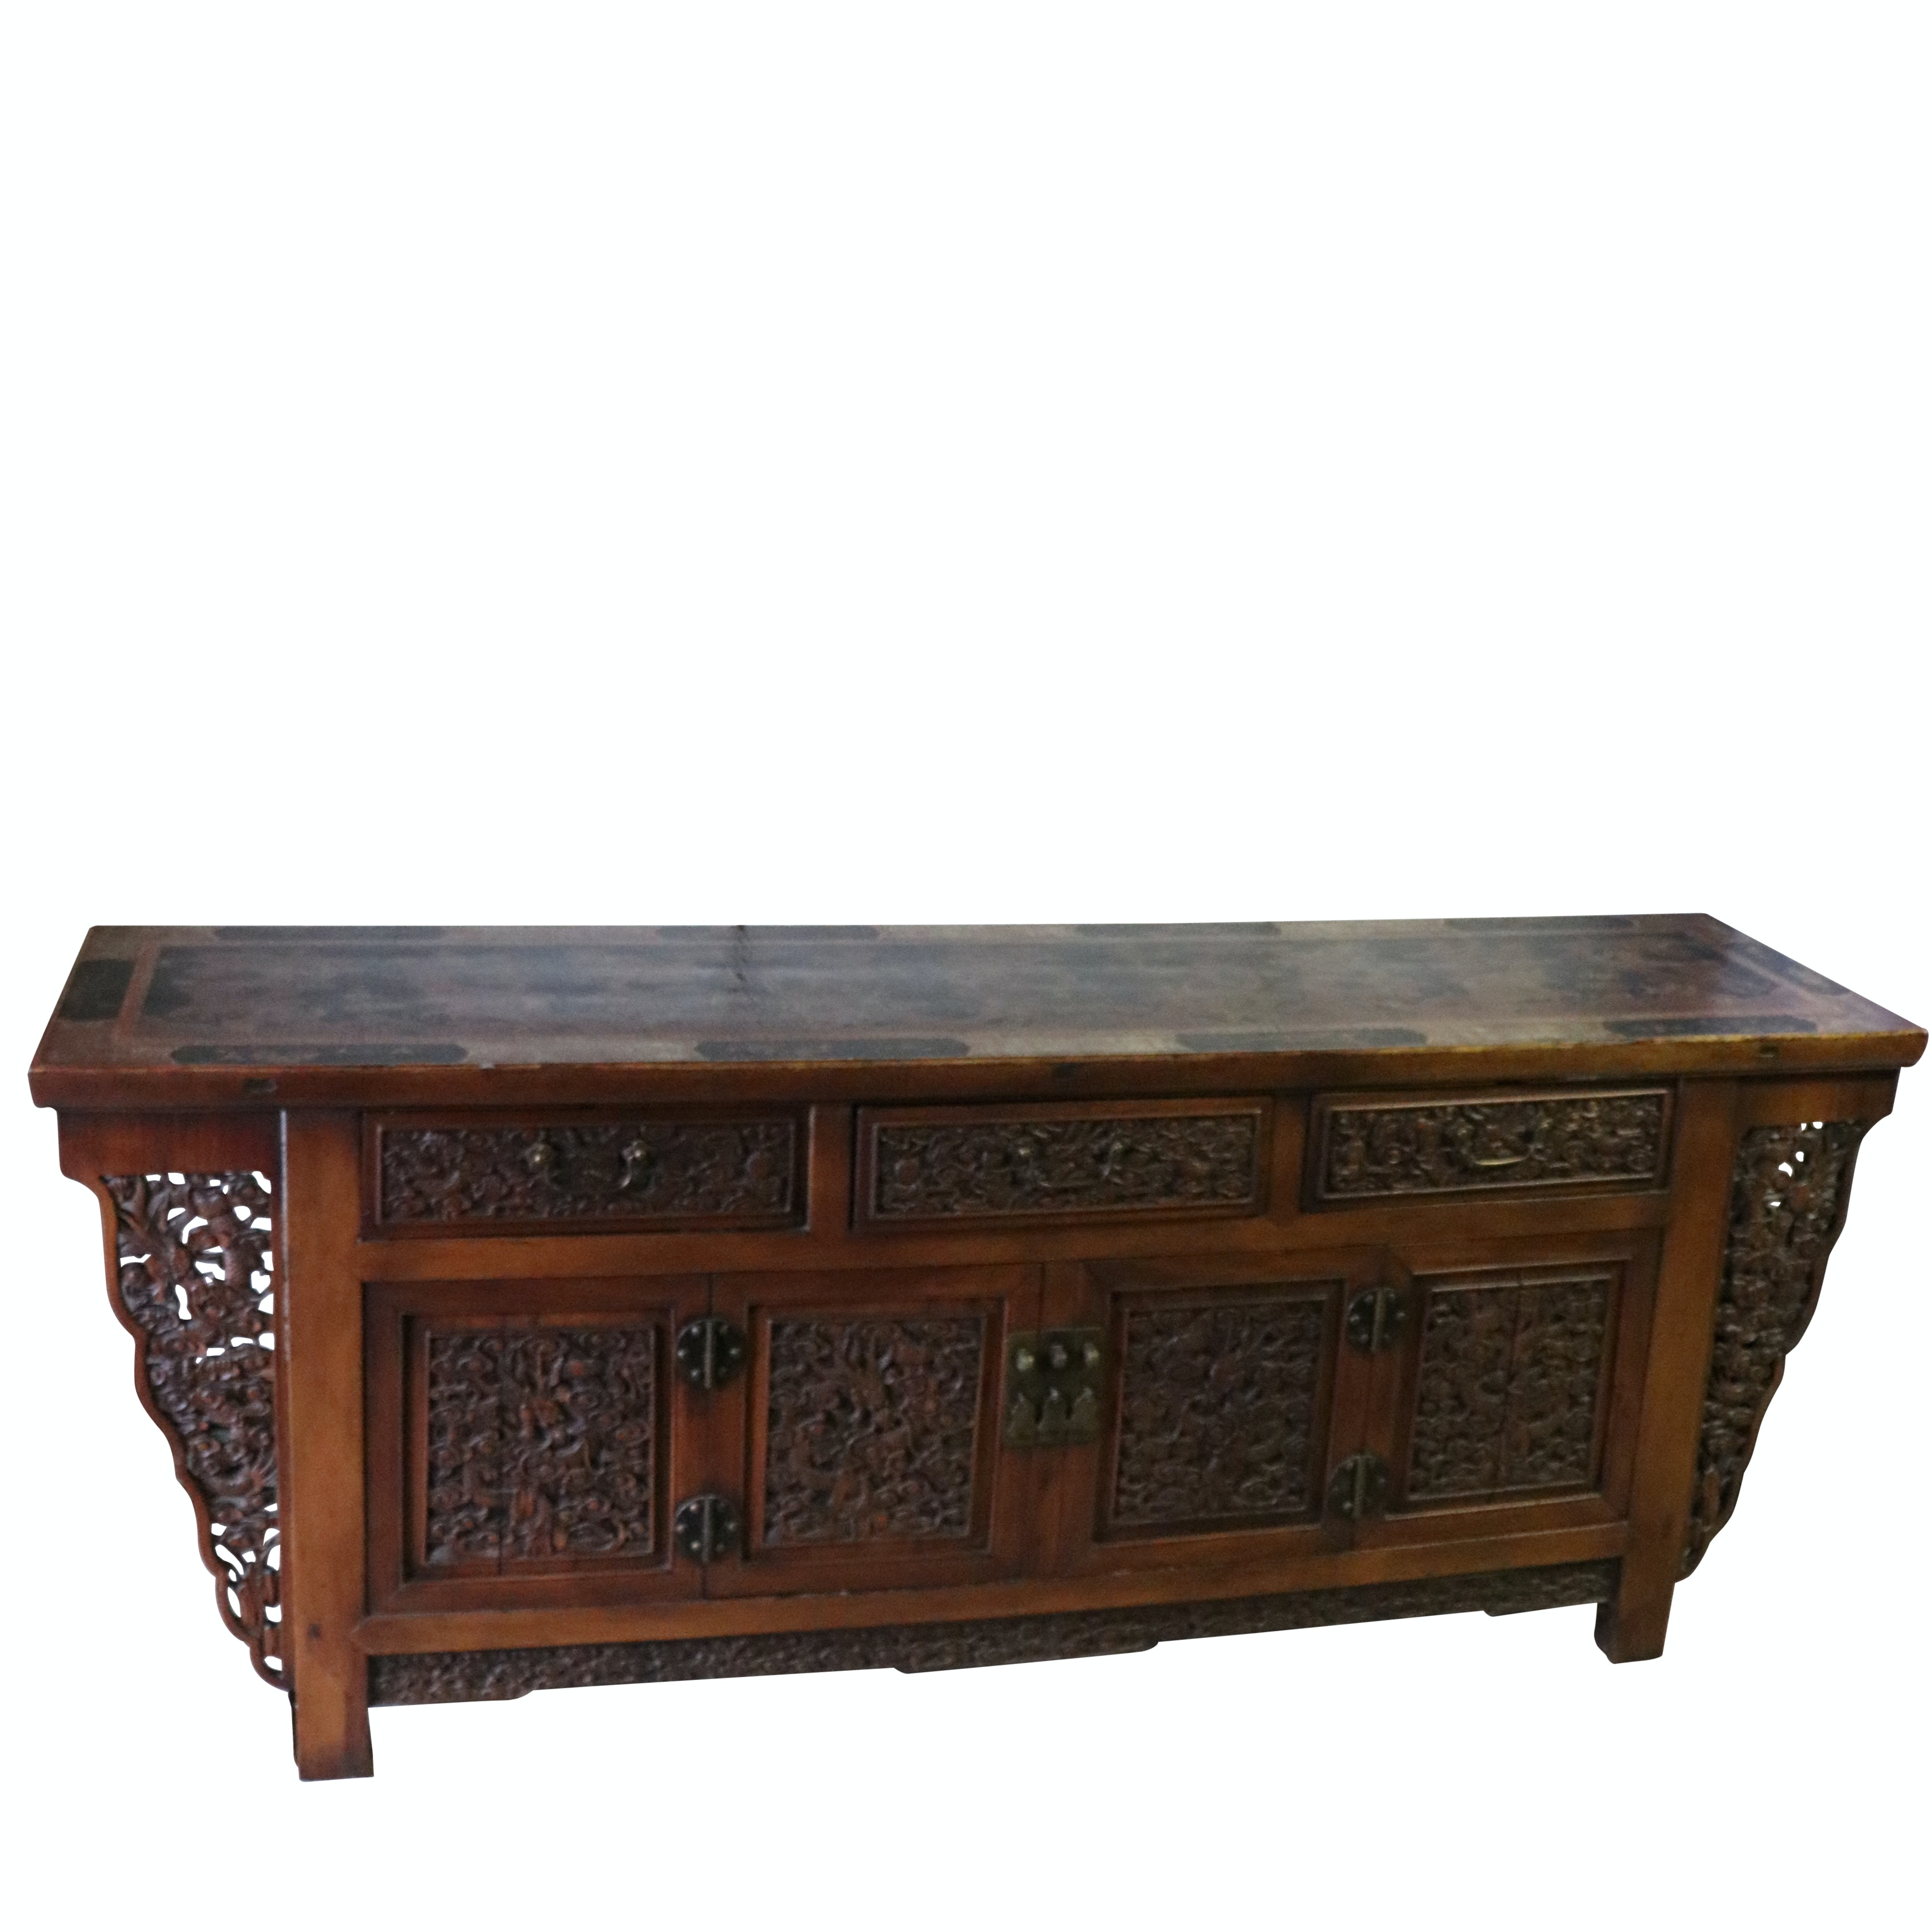 Vintage Chinese Carved and Hand-Painted Credenza